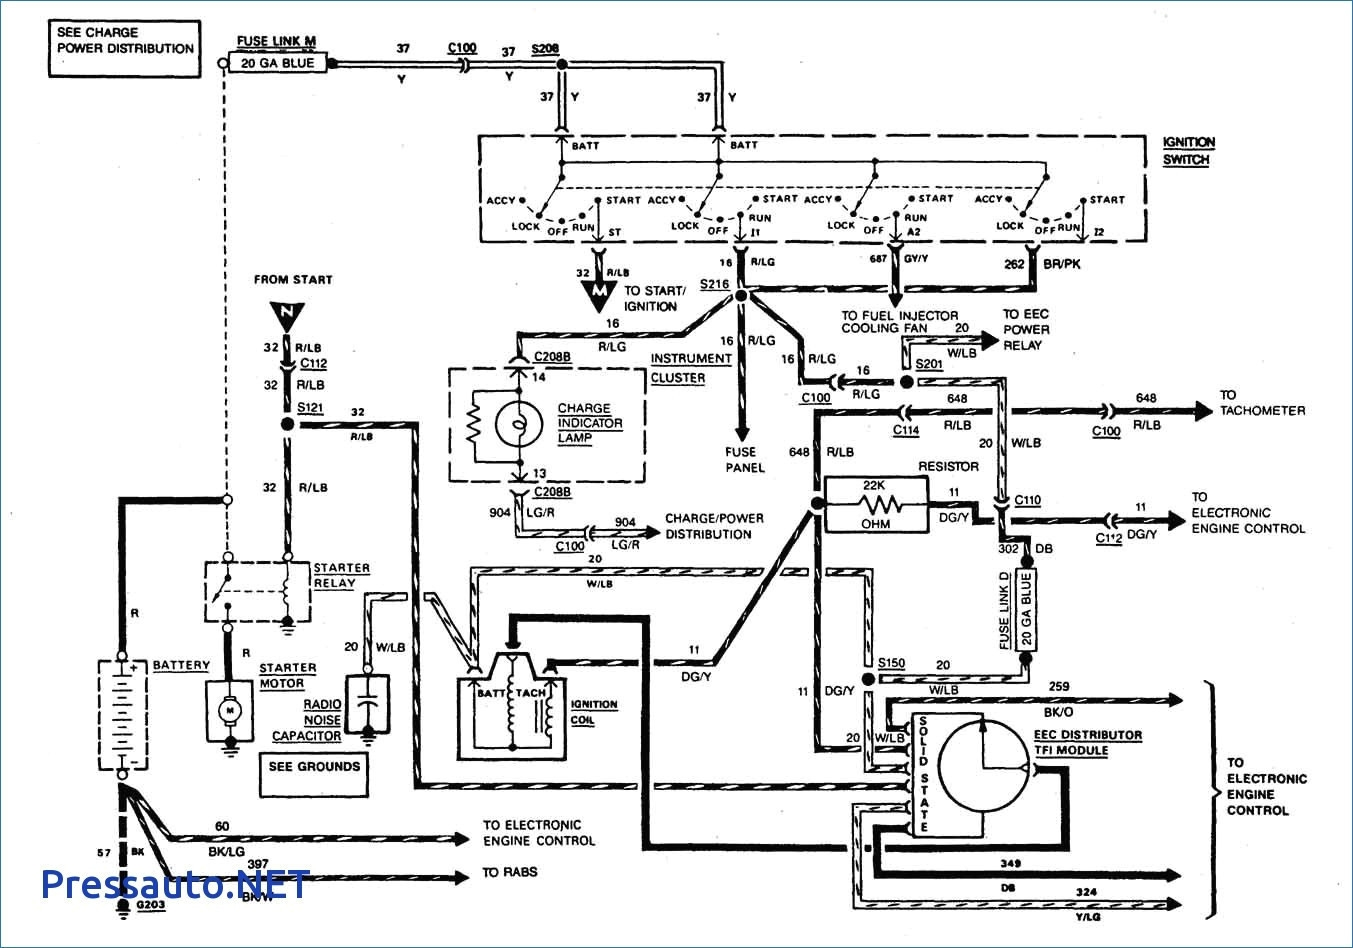 ford think ignition wiring 1989 ford f150 ignition wiring diagram | free wiring diagram 2005 ford expedition ignition wiring diagram